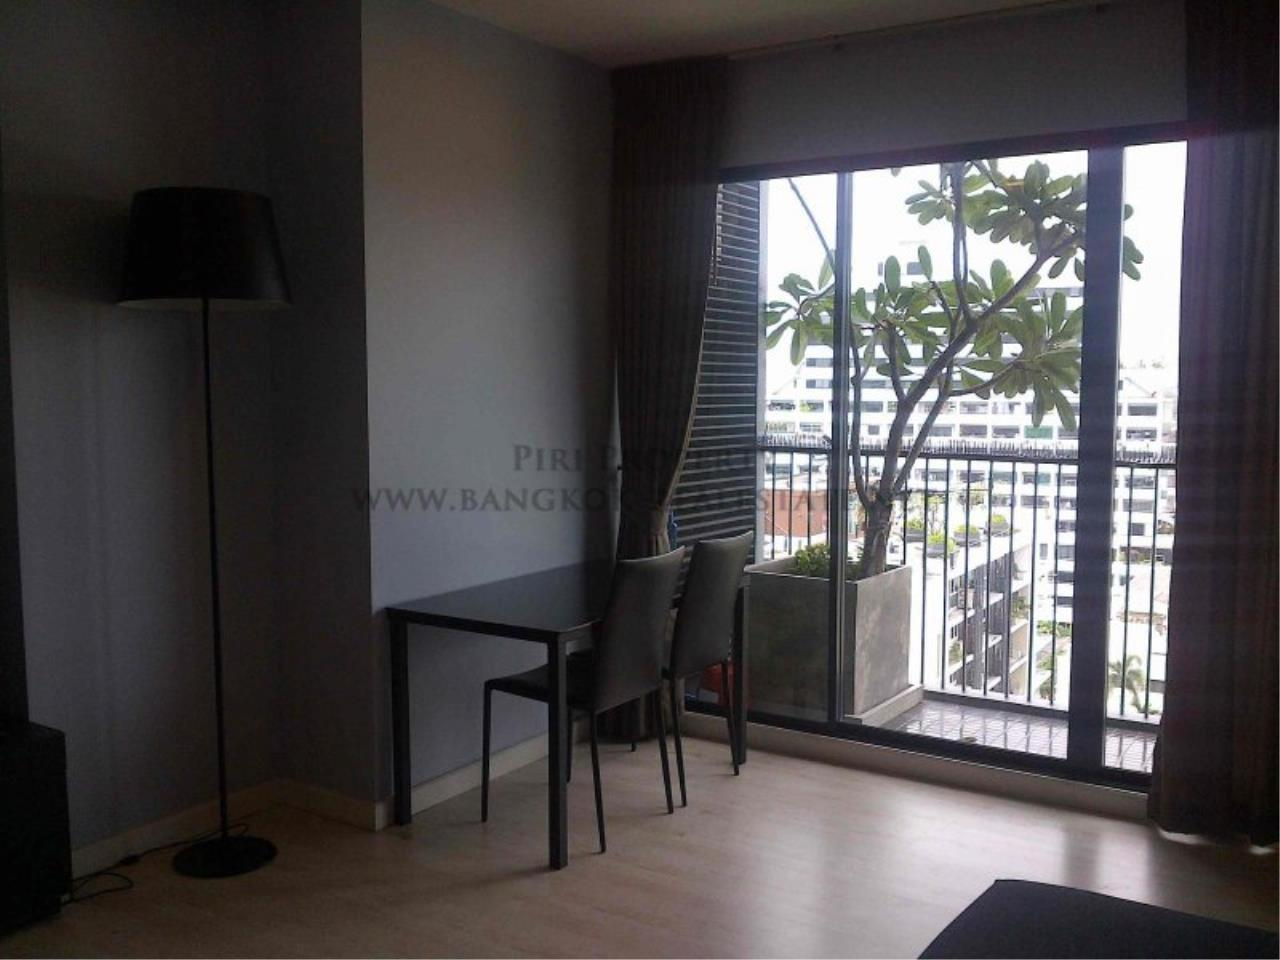 Piri Property Agency's Noble Reflex Condo for Rent - Modern And Spacious 68 SQM 1 Bedroom 4